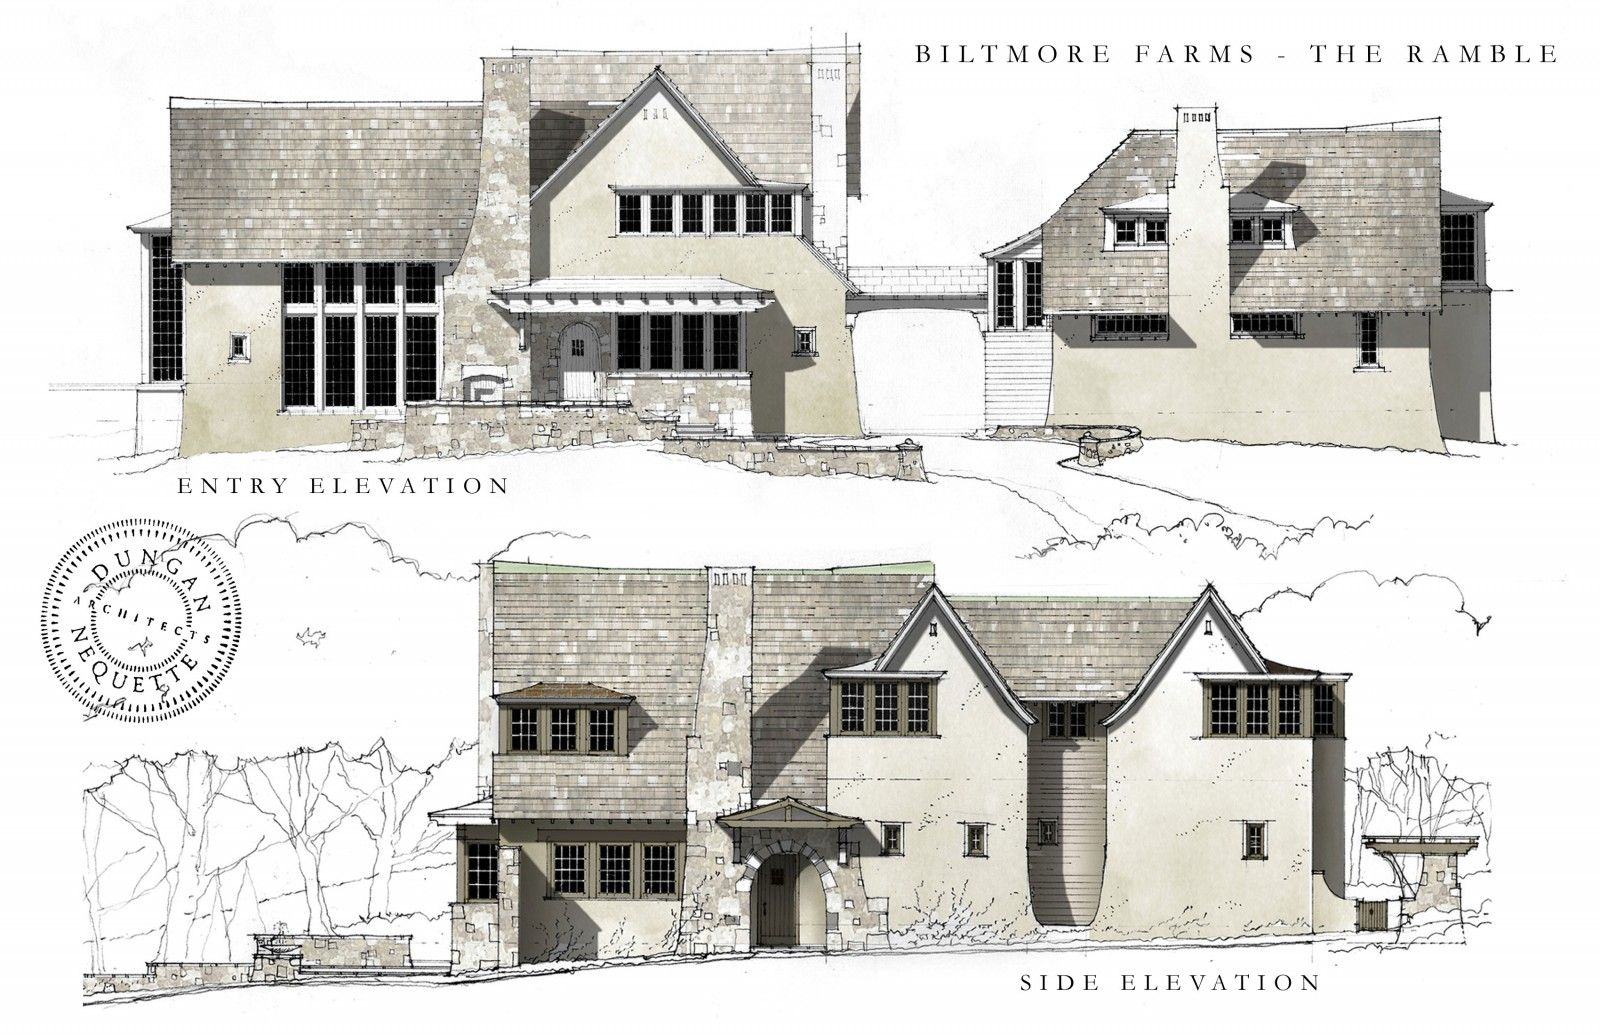 Home interior elevation sketch  dungannequette architects  pen pencil ink paper